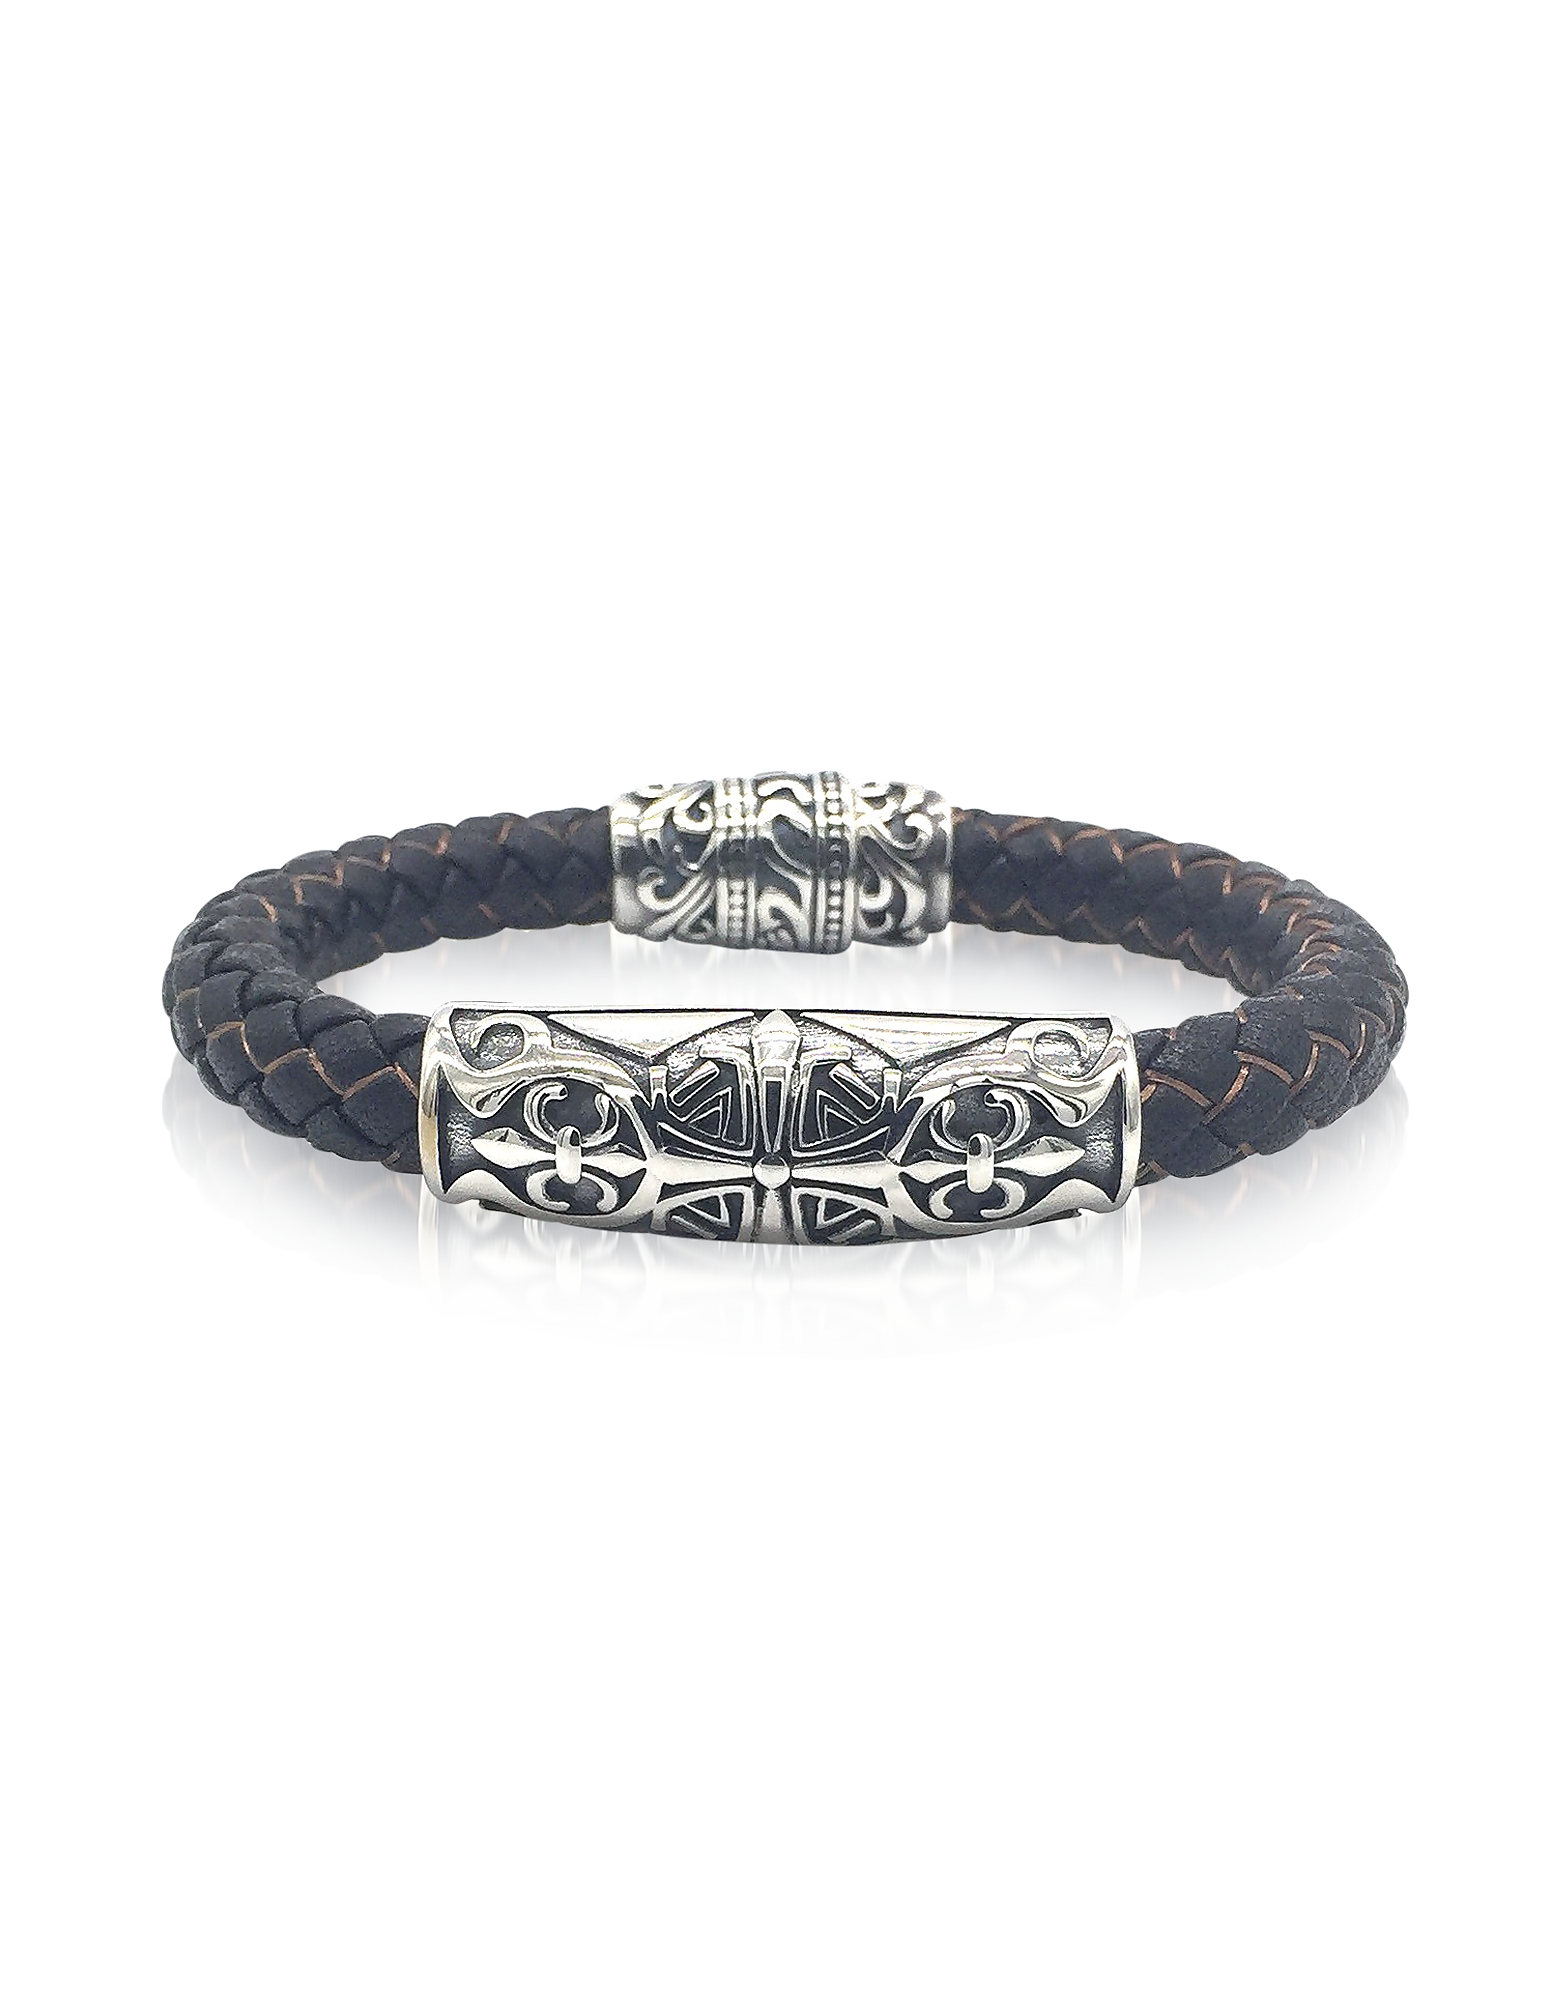 Image of Blackbourne Designer Men's Bracelets, Engraved Stainless Steel and Braided Leather Men's Bracelet